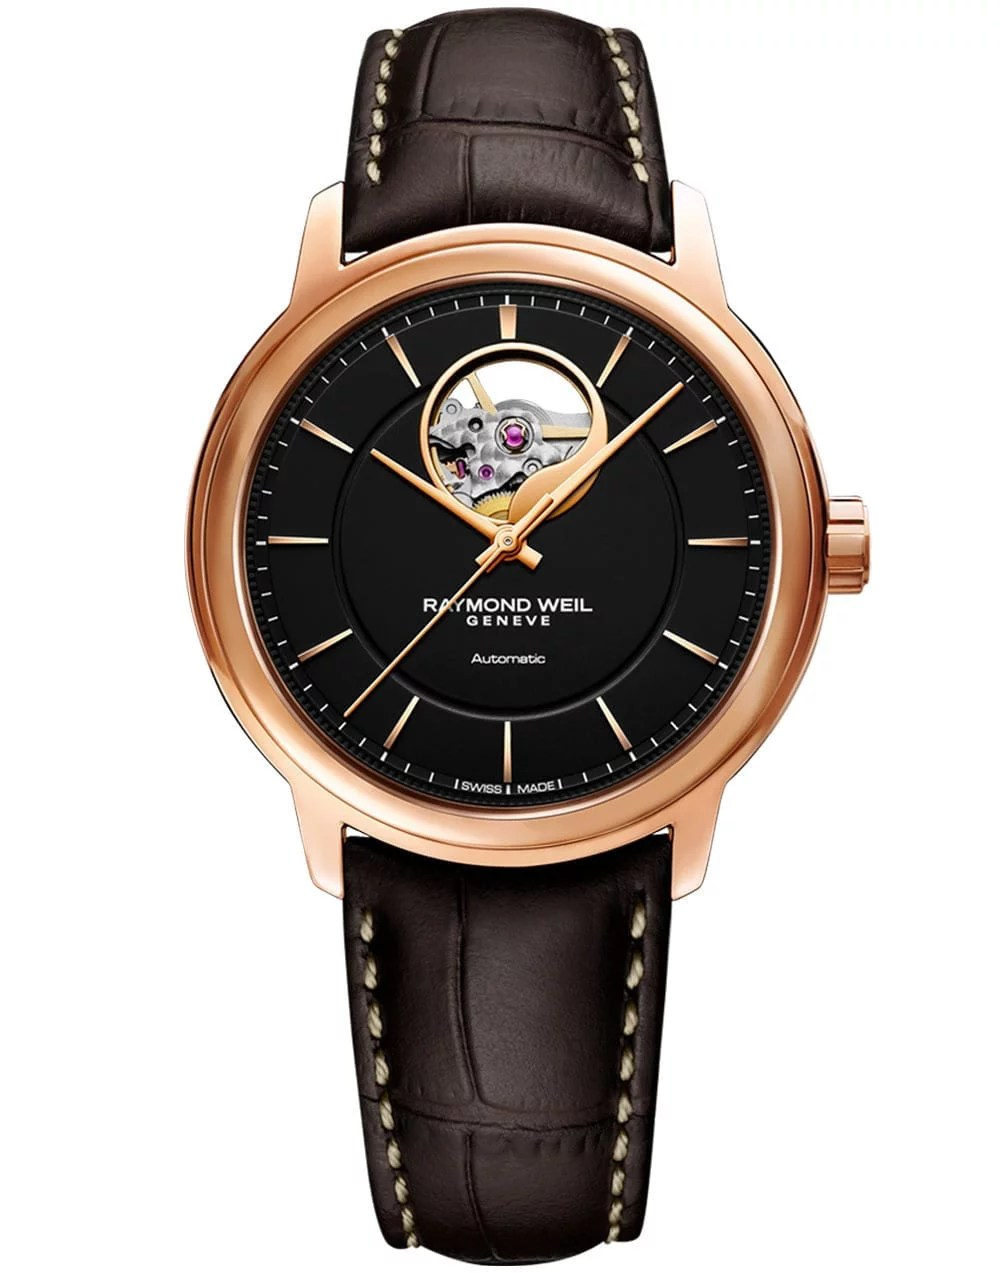 Maestro Men's Automatic Visible Balance Wheel Brown Leather Watch, 40mm